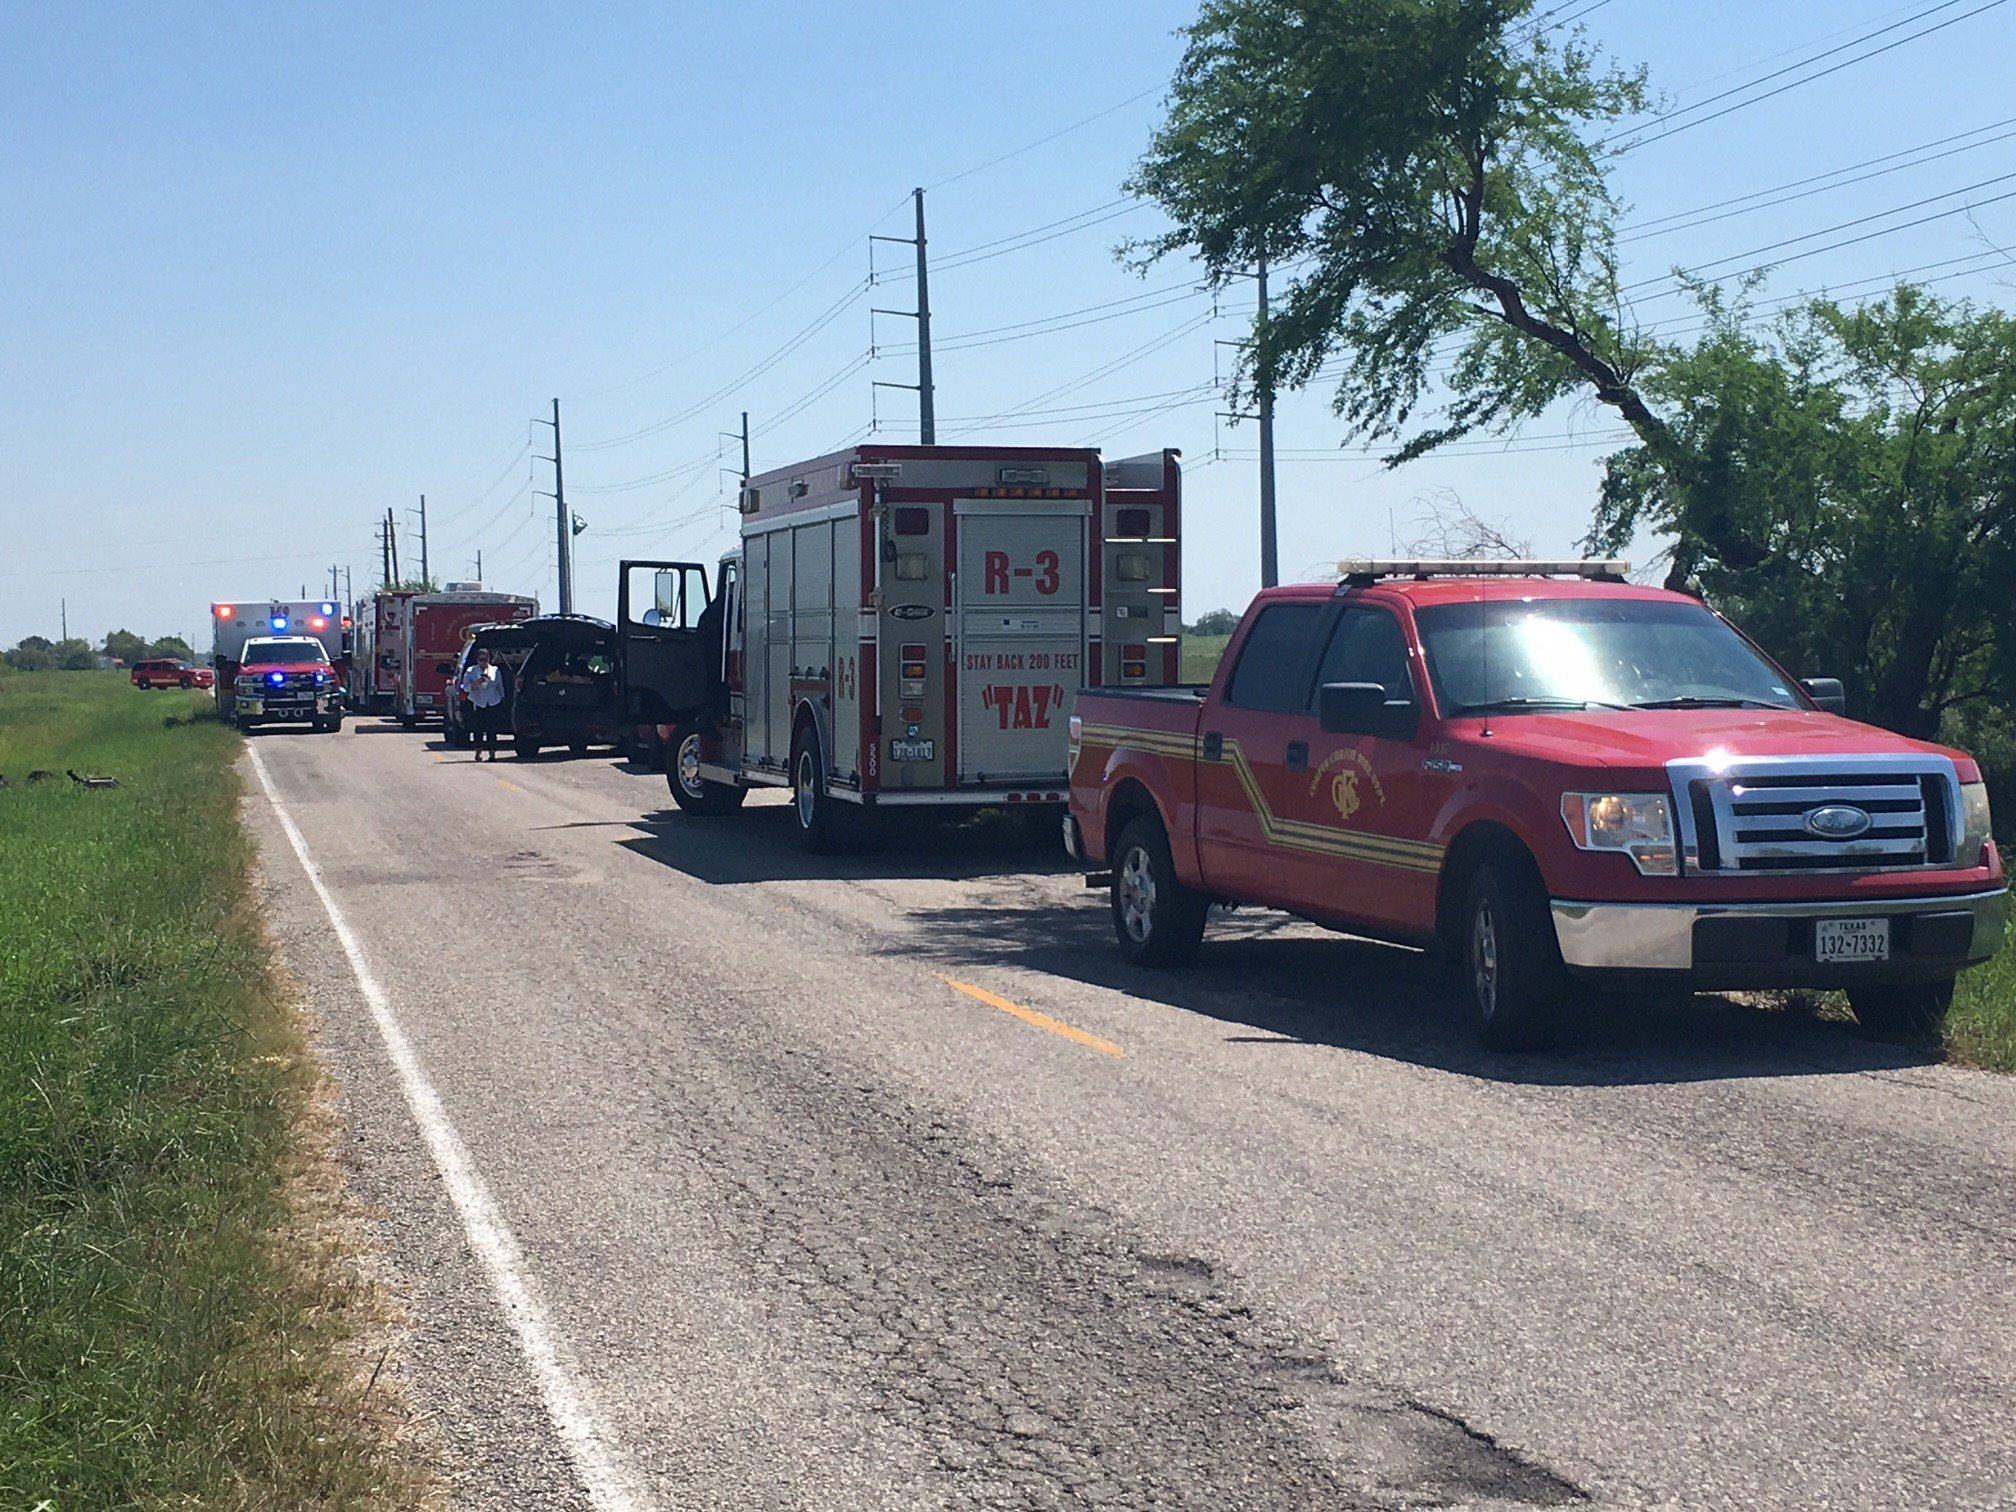 Emergency crews, including hazmat, are on the scene of a possible chemical leak.